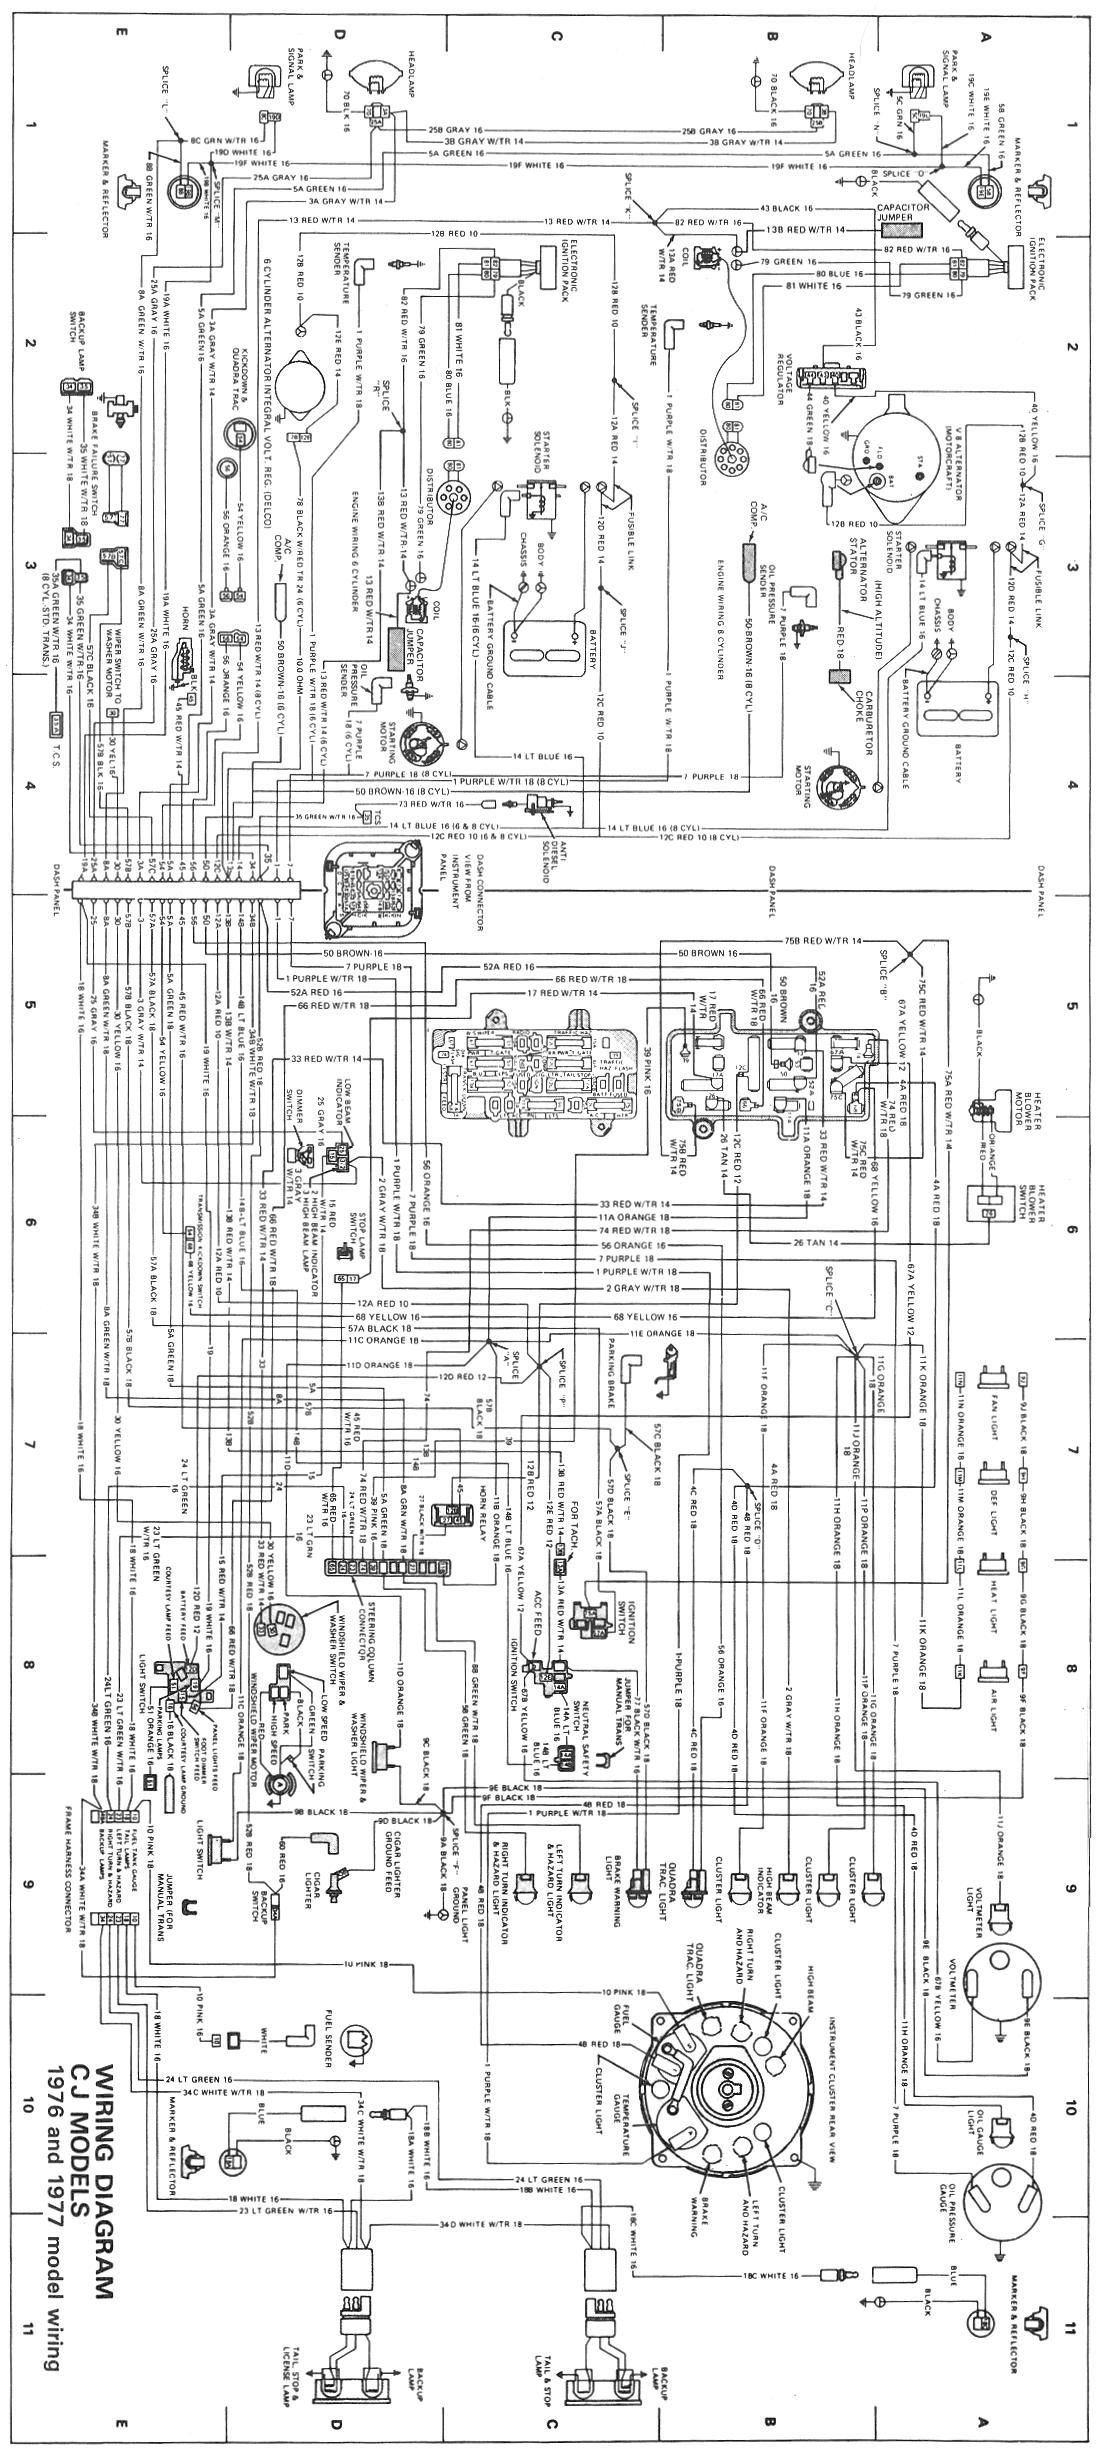 1981 jeep cherokee wiring diagram schematic 1987 jeep cherokee wiring diagram schematic